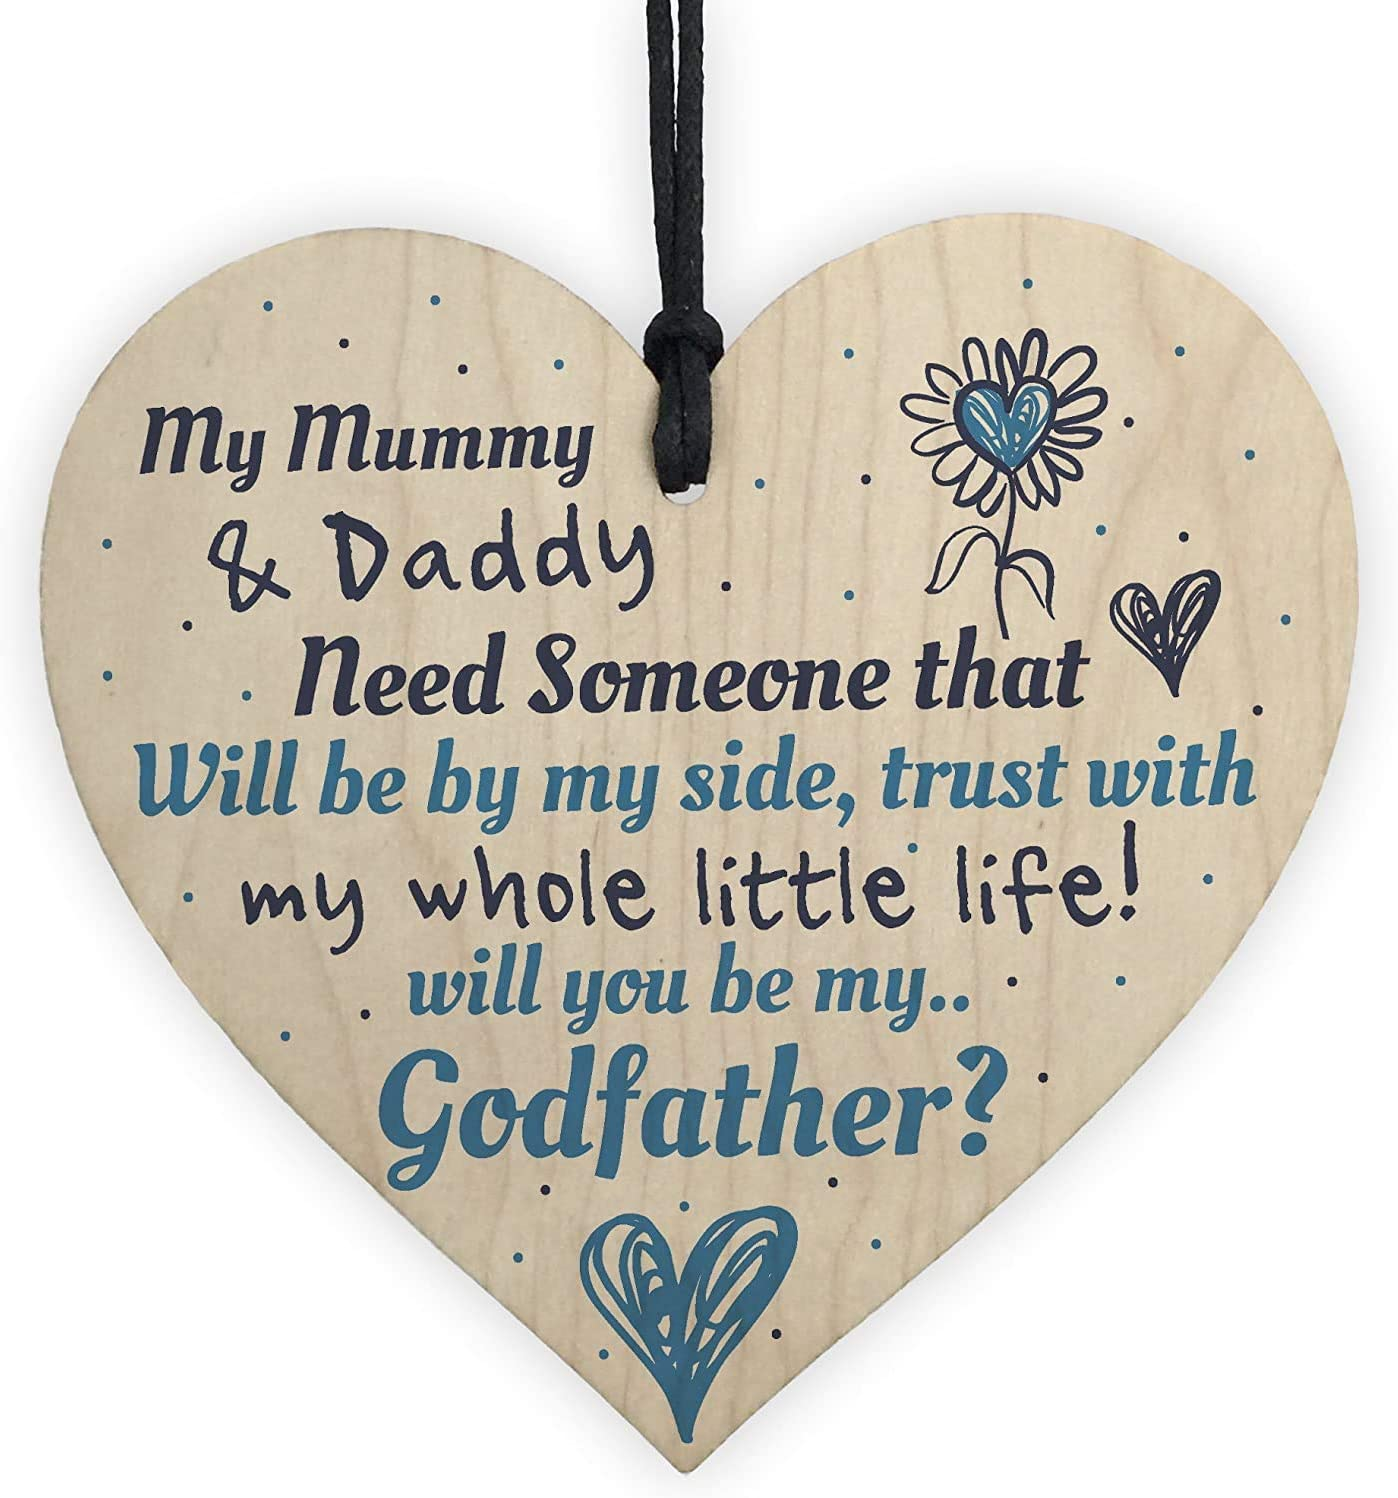 Dadaly Decor Godfather Signs Godfather Proposal Signs Will You Be My Godfather Hanging Wood Plaque 4 x 4 inch Baptism Gifts.